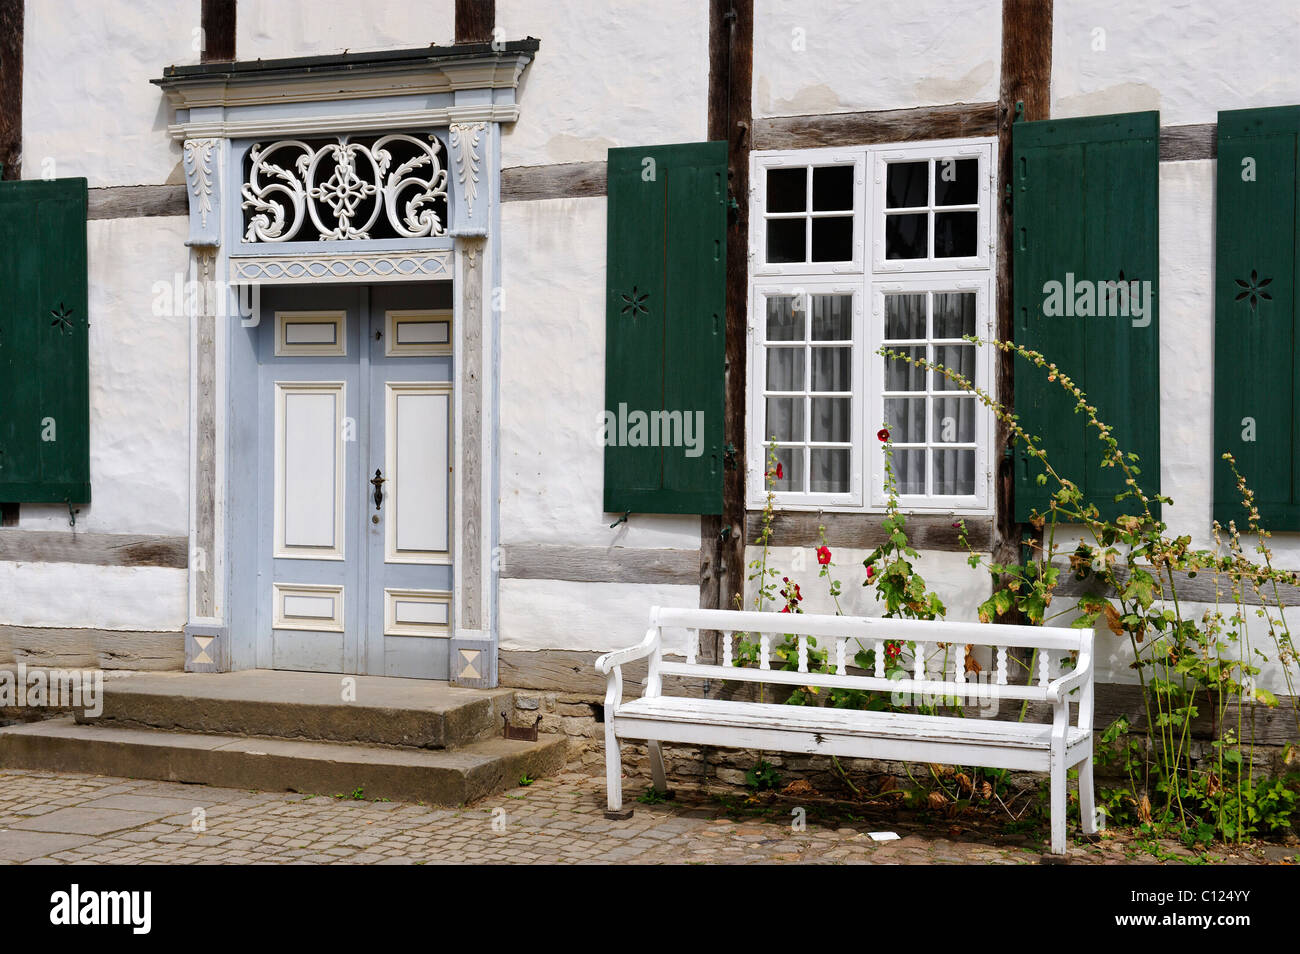 Schoenhof from Wiedenbrueck, built about 1720, open air museum Detmold, North Rhine-Westphalia, Germany, Europe - Stock Image